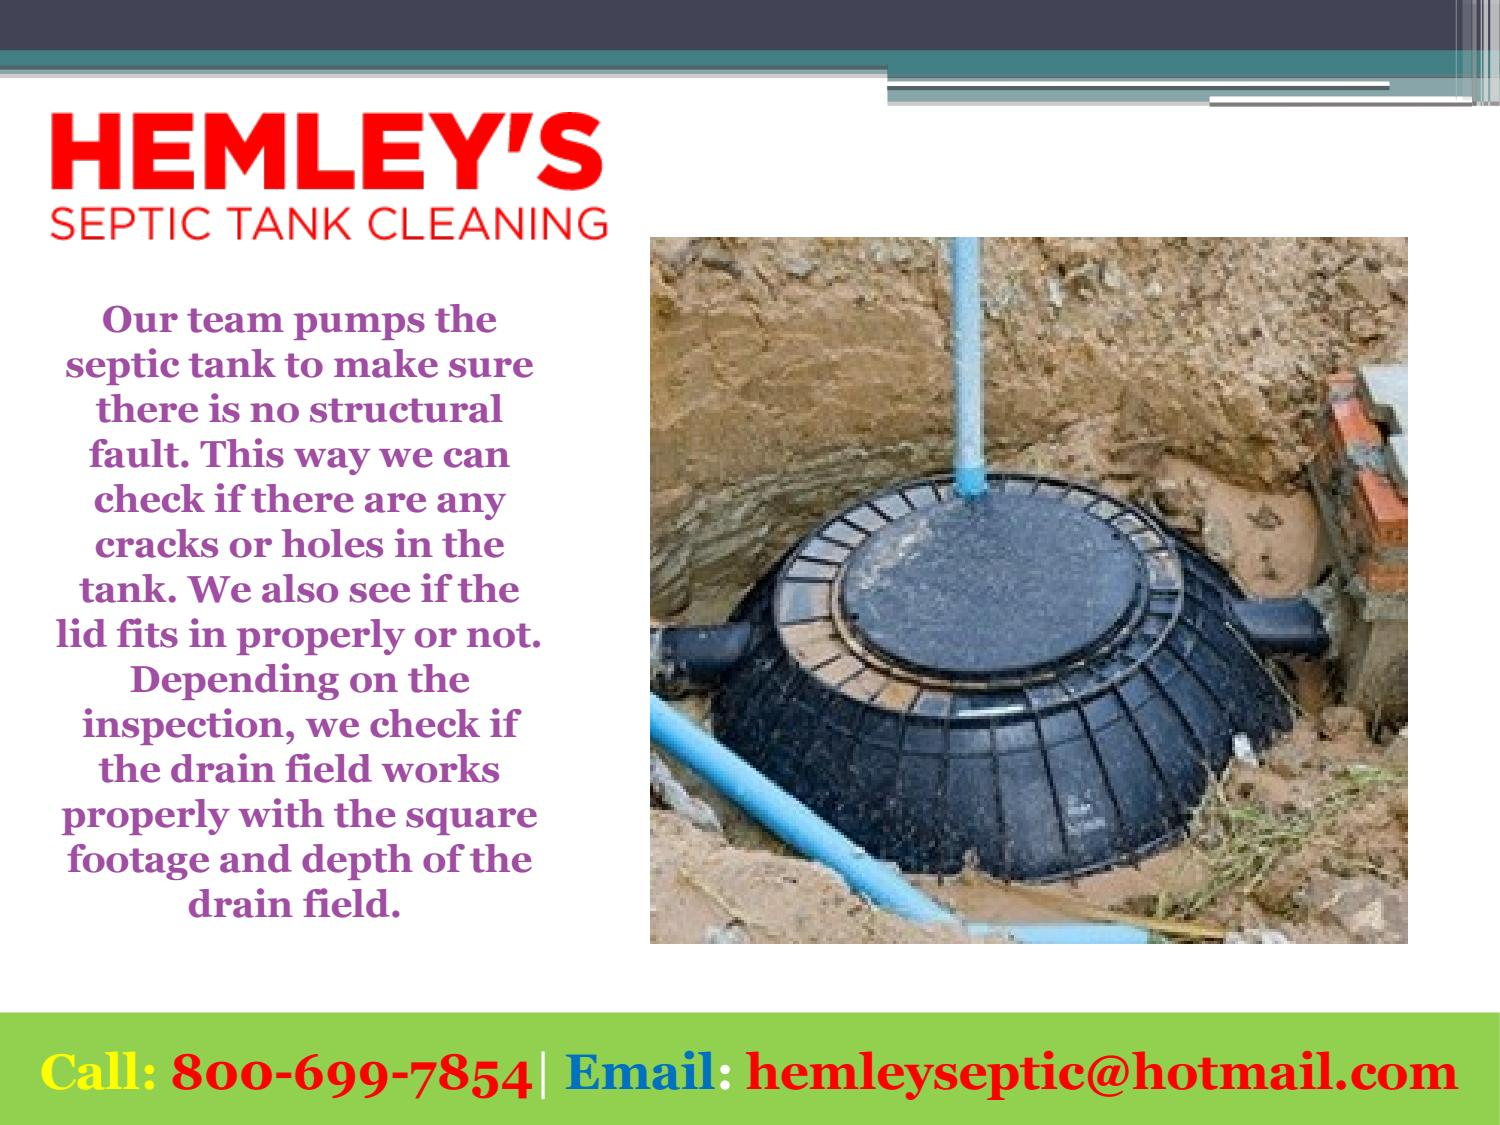 Septic Tank Inspections Near Me by Hemley's Septic Service - issuu